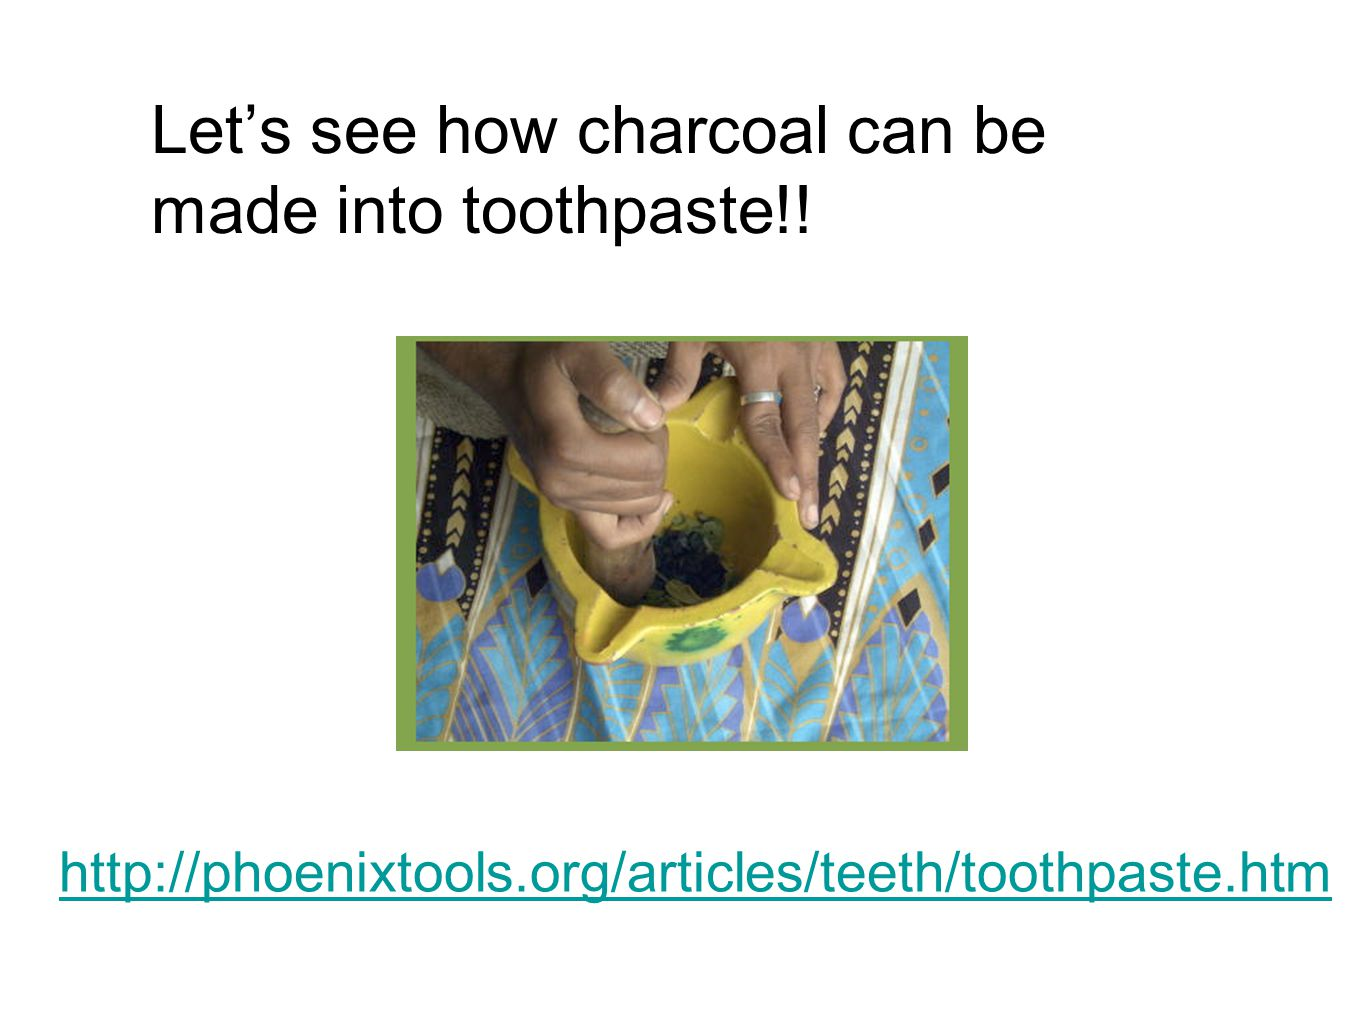 Let's see how charcoal can be made into toothpaste!!